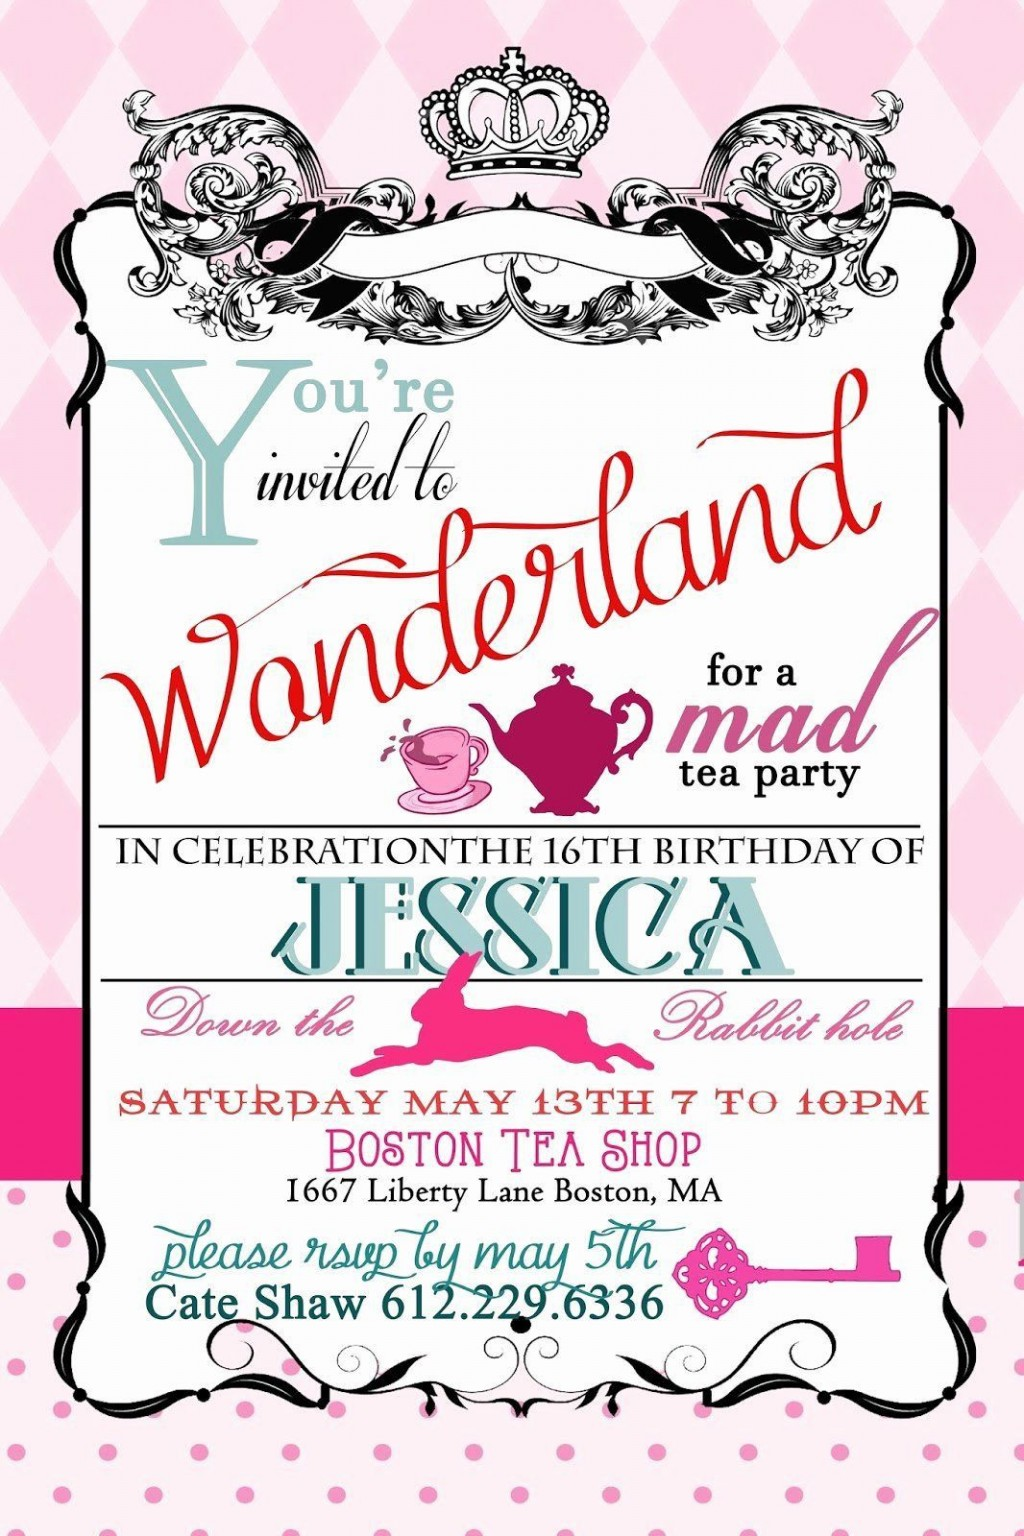 005 Exceptional Alice In Wonderland Party Template High Definition  Templates Invitation FreeLarge